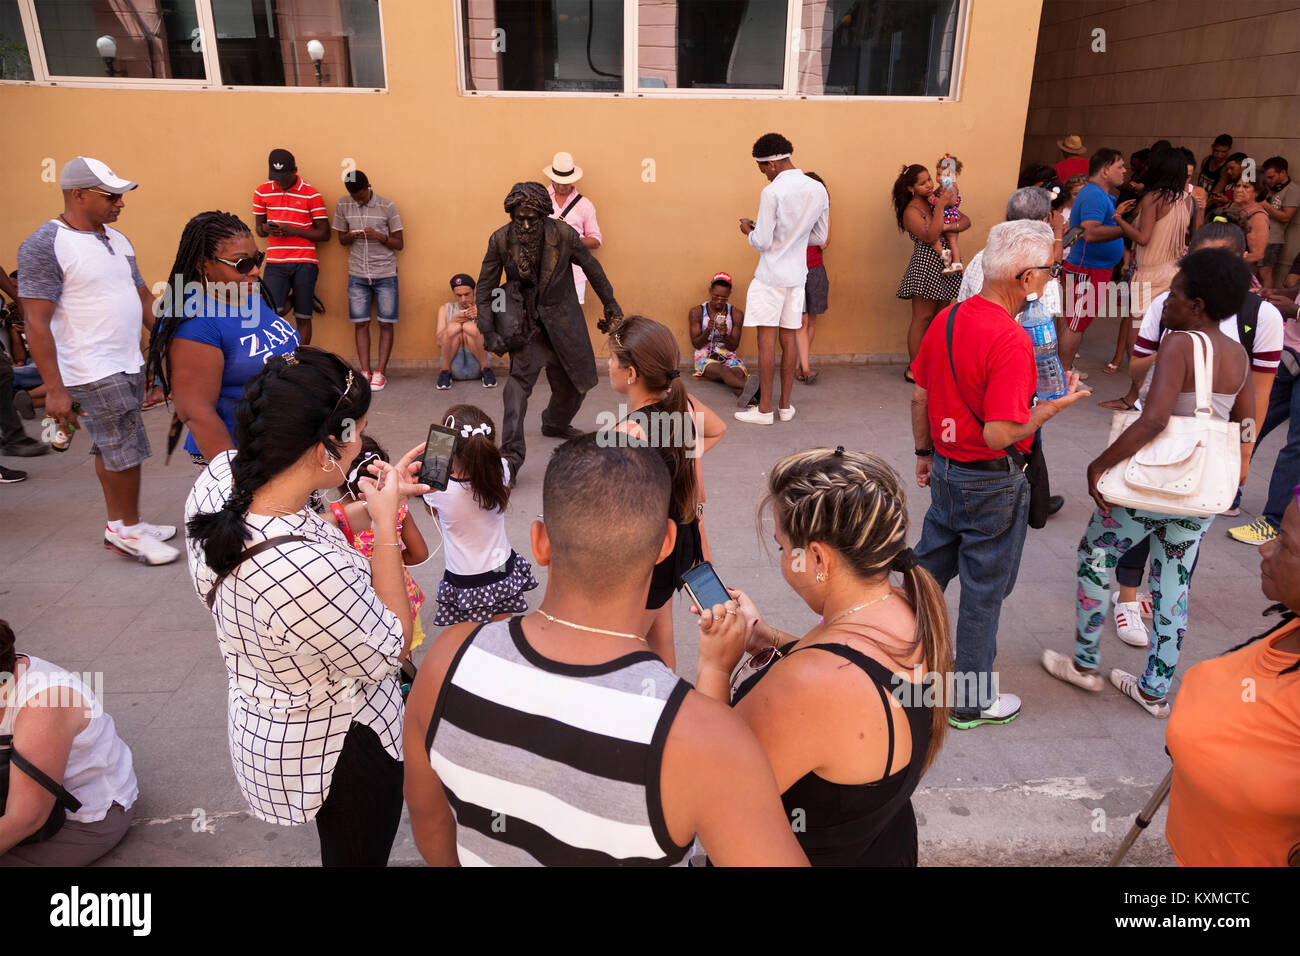 Cubans gathered around a Wi-Fi hotspot with their cell phones in Havana, Cuba. - Stock Image